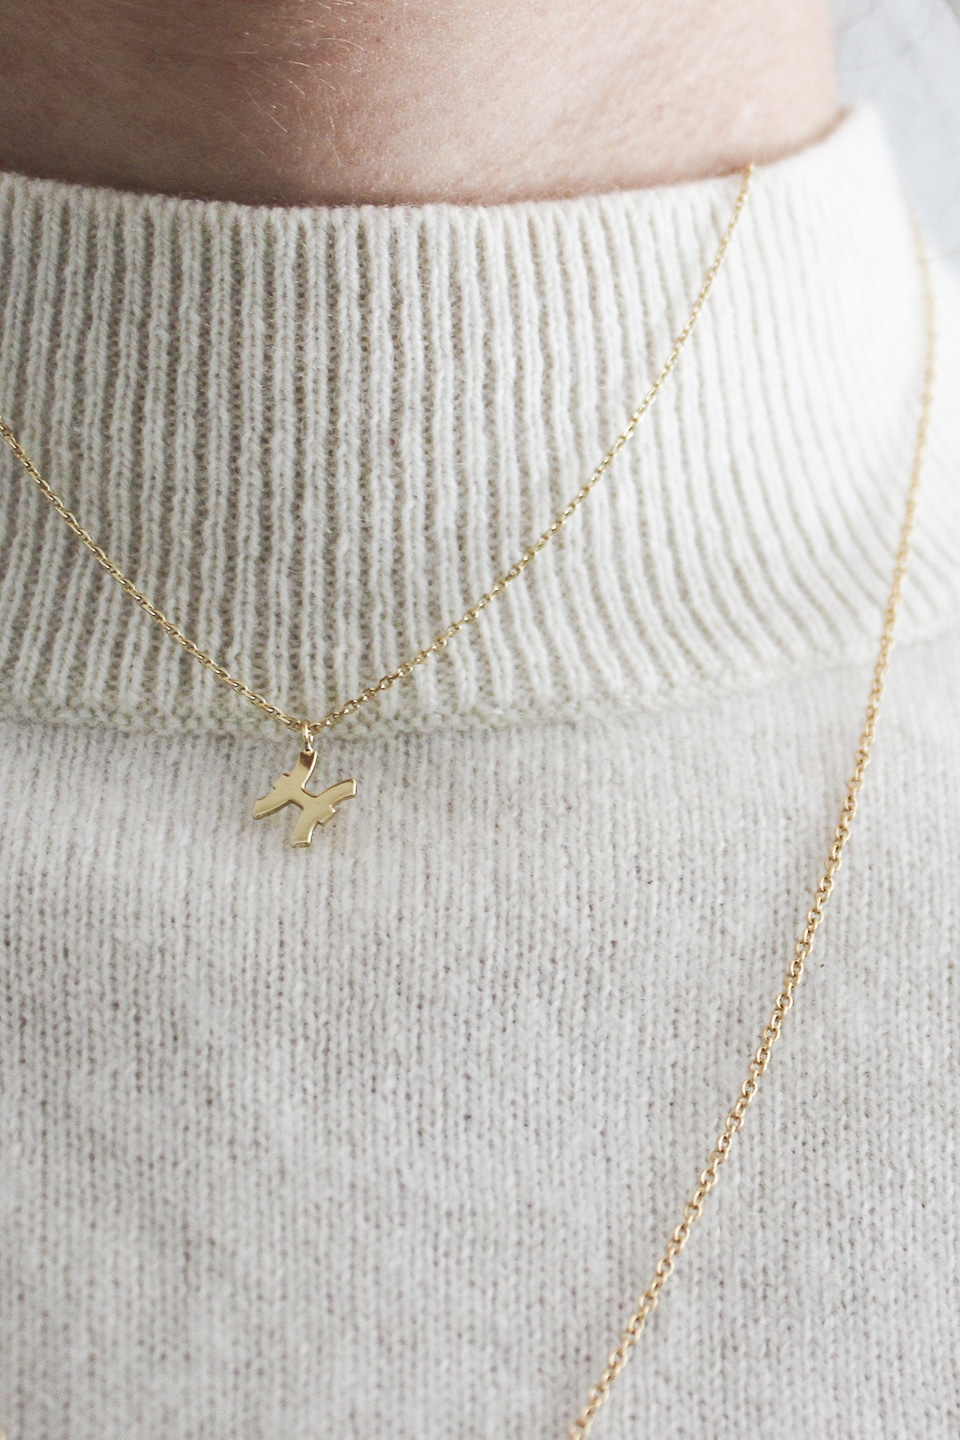 Ethical gold necklaces layered over cream jumper